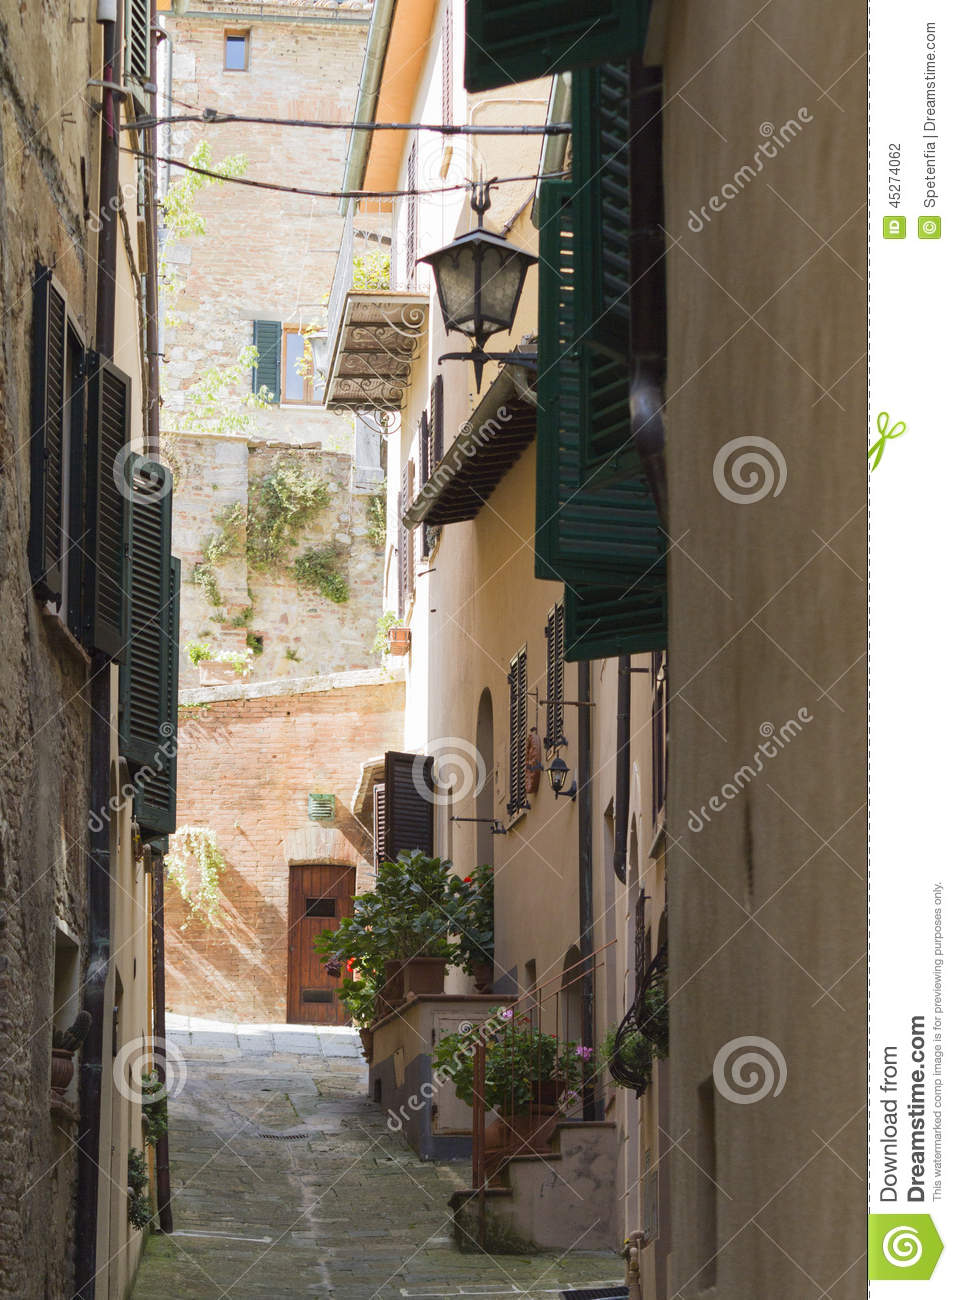 Angle Architectural Stock Photo Image 45274062